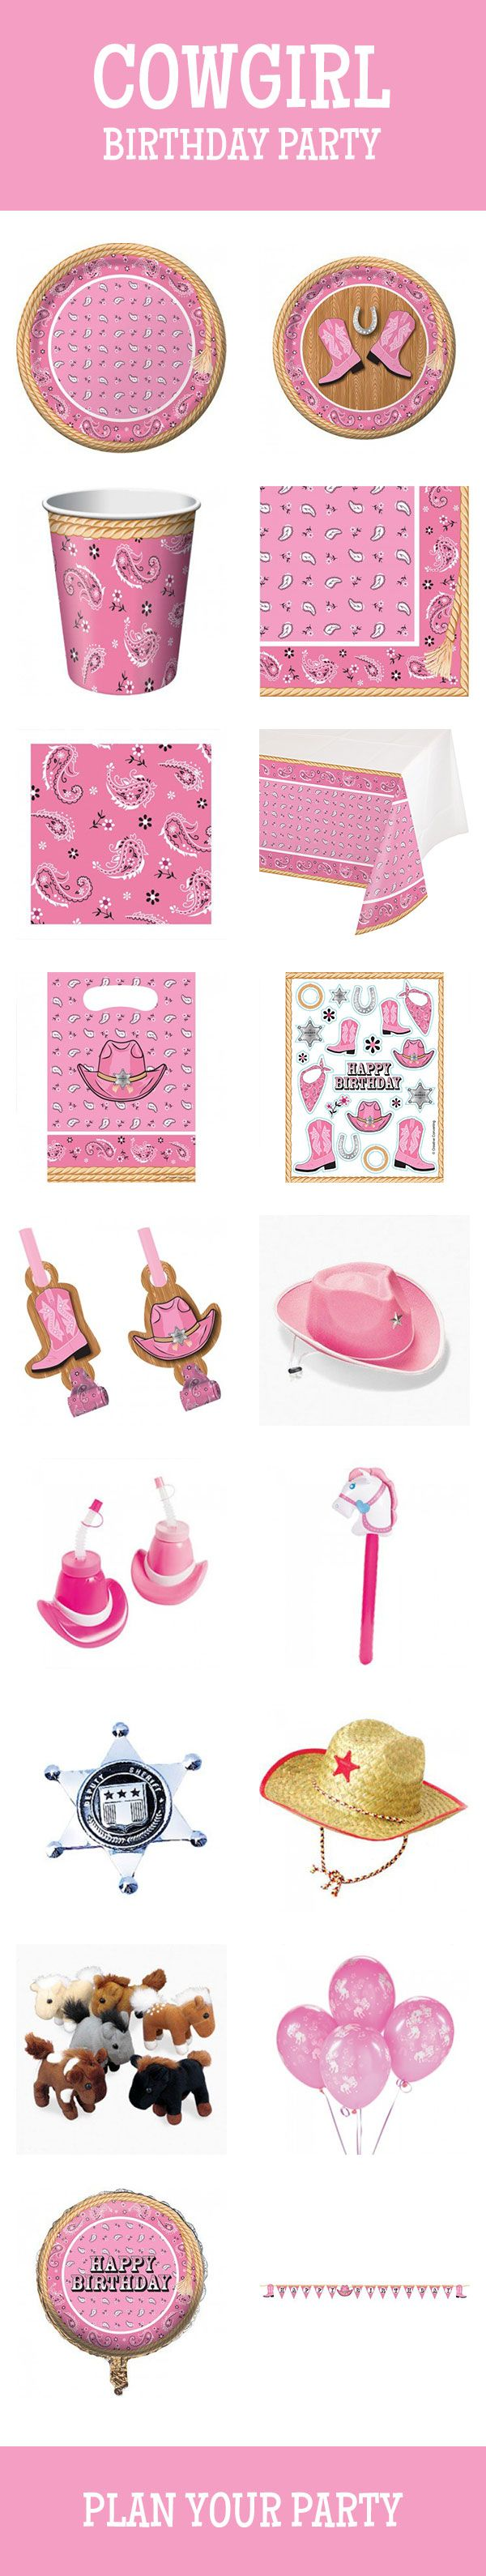 Get them pink boots ready, it's time to have a cowgirl party! We have a full line, which includes tableware, decorations, party favors, and more. Check them out here: http://www.discountpartysupplies.com/girl-party-supplies/cowgirl-party-supplies?utm_source=Pinterest&utm_medium=Social&utm_content=cowgirl_party_supplies&utm_campaign=cowgirl_party_Promoted_Pin